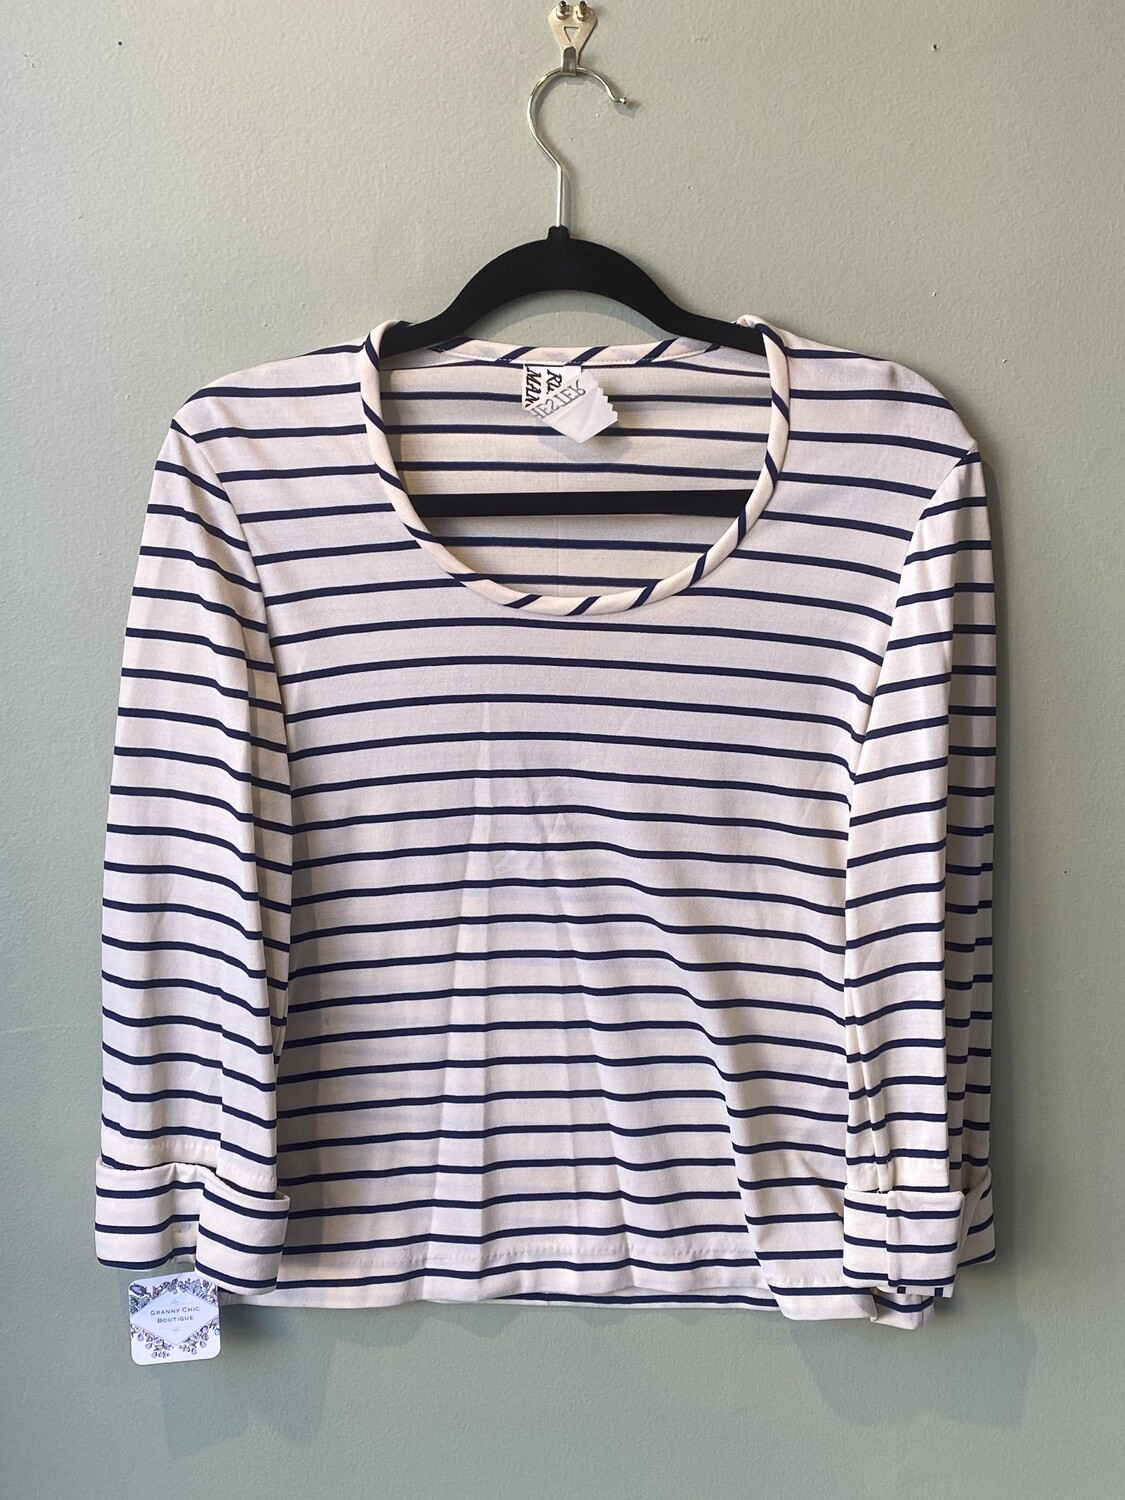 Vintage Ruth Manchester Striped Knit Shirt with Scarf, Size S